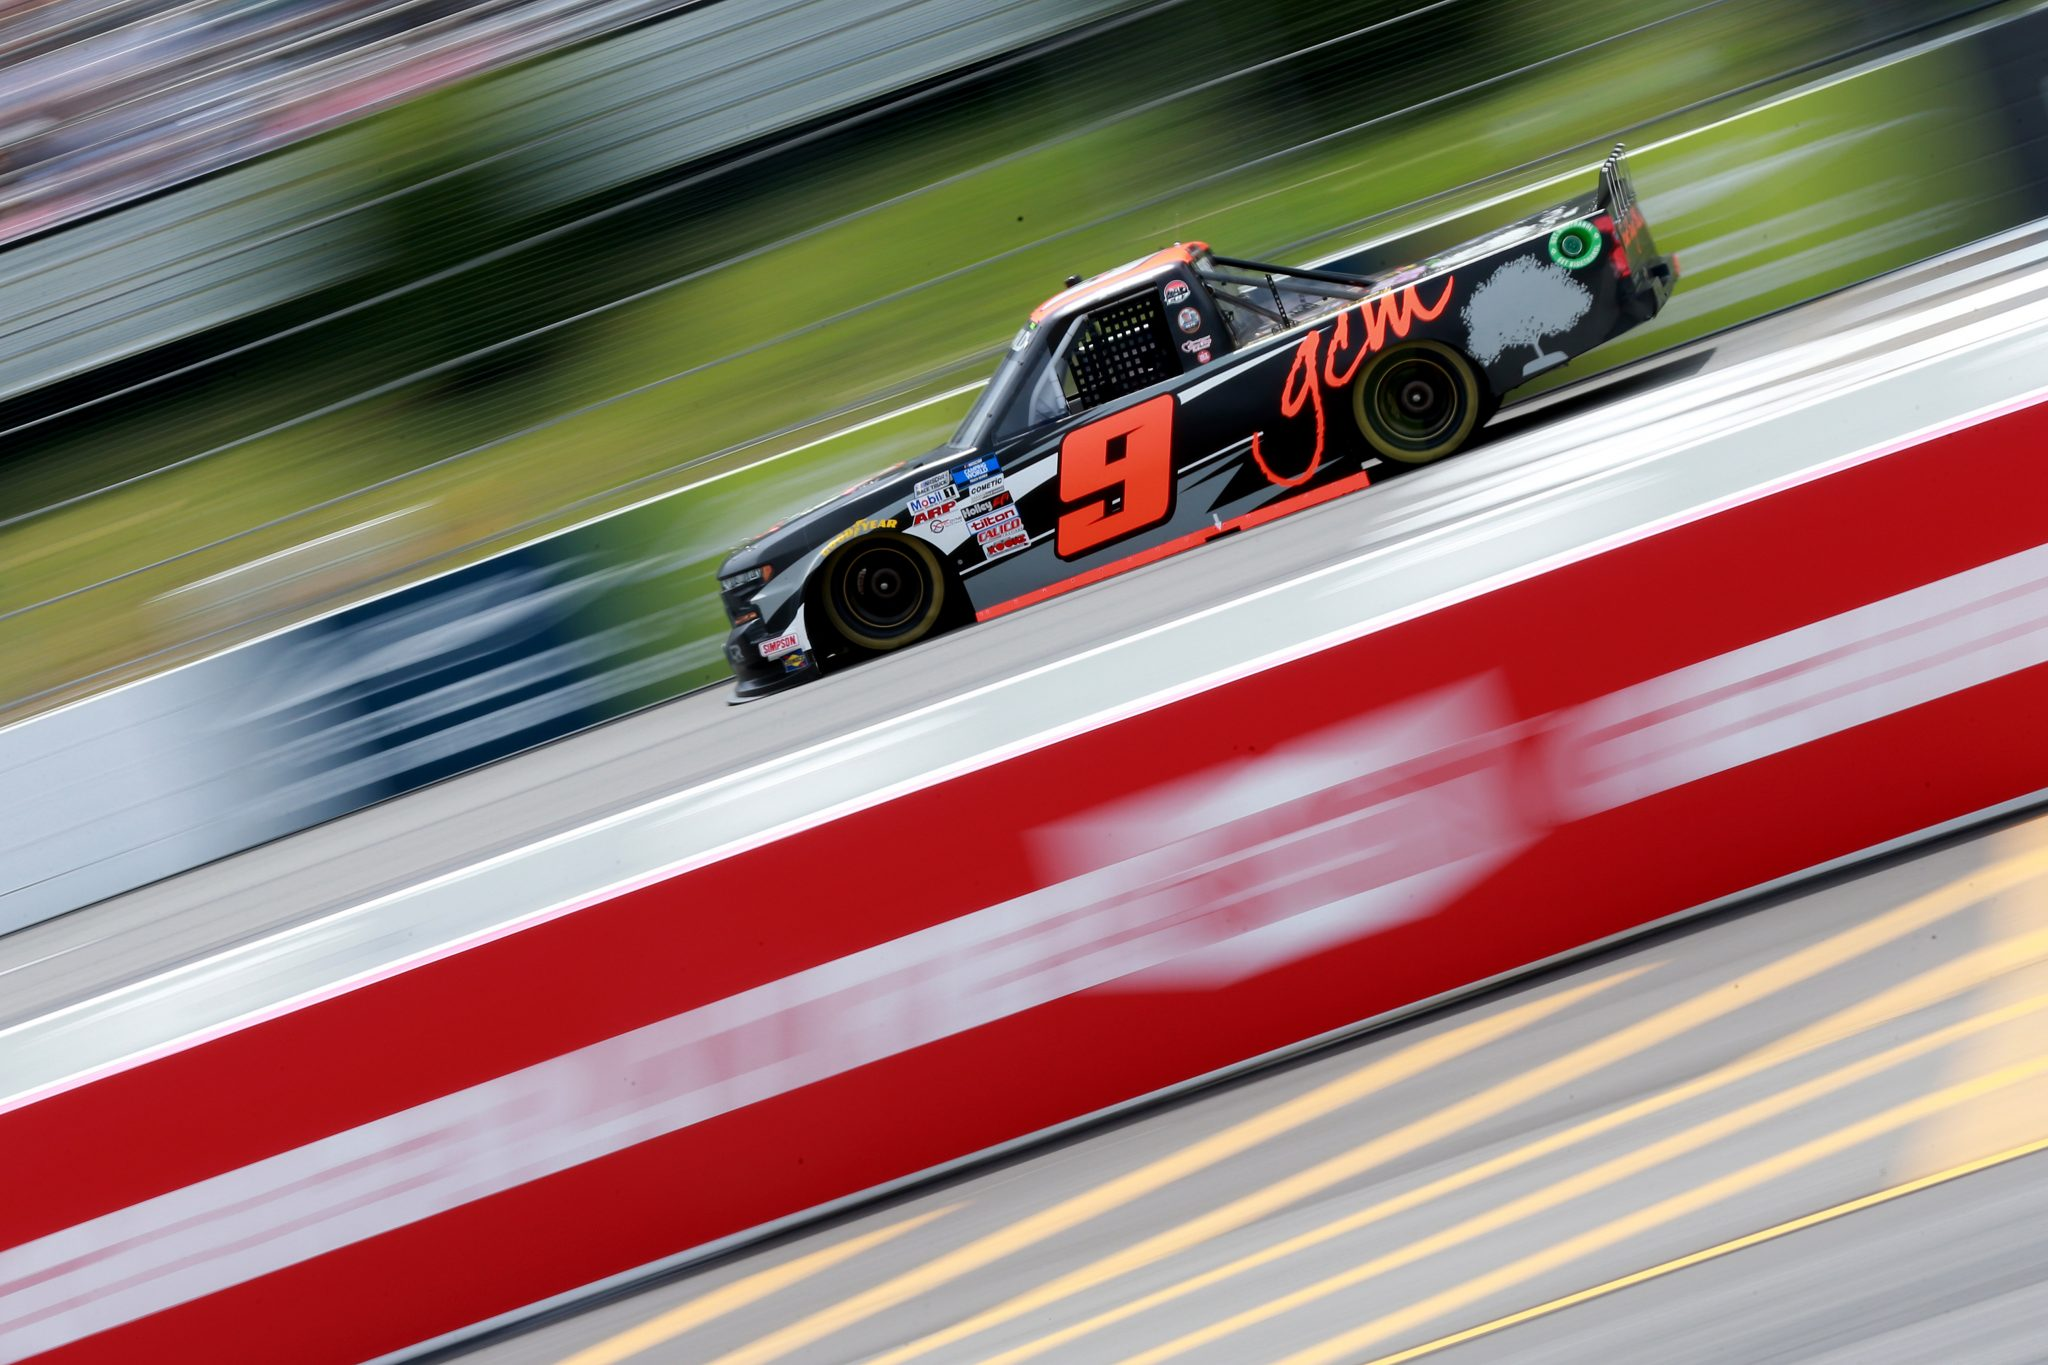 LONG POND, PENNSYLVANIA - JUNE 26: Grant Enfinger, driver of the #9 Grant County Mulch Chevrolet, drives during the NASCAR Camping World Truck Series CRC Brakleen 150 at Pocono Raceway on June 26, 2021 in Long Pond, Pennsylvania. (Photo by Sean Gardner/Getty Images) | Getty Images